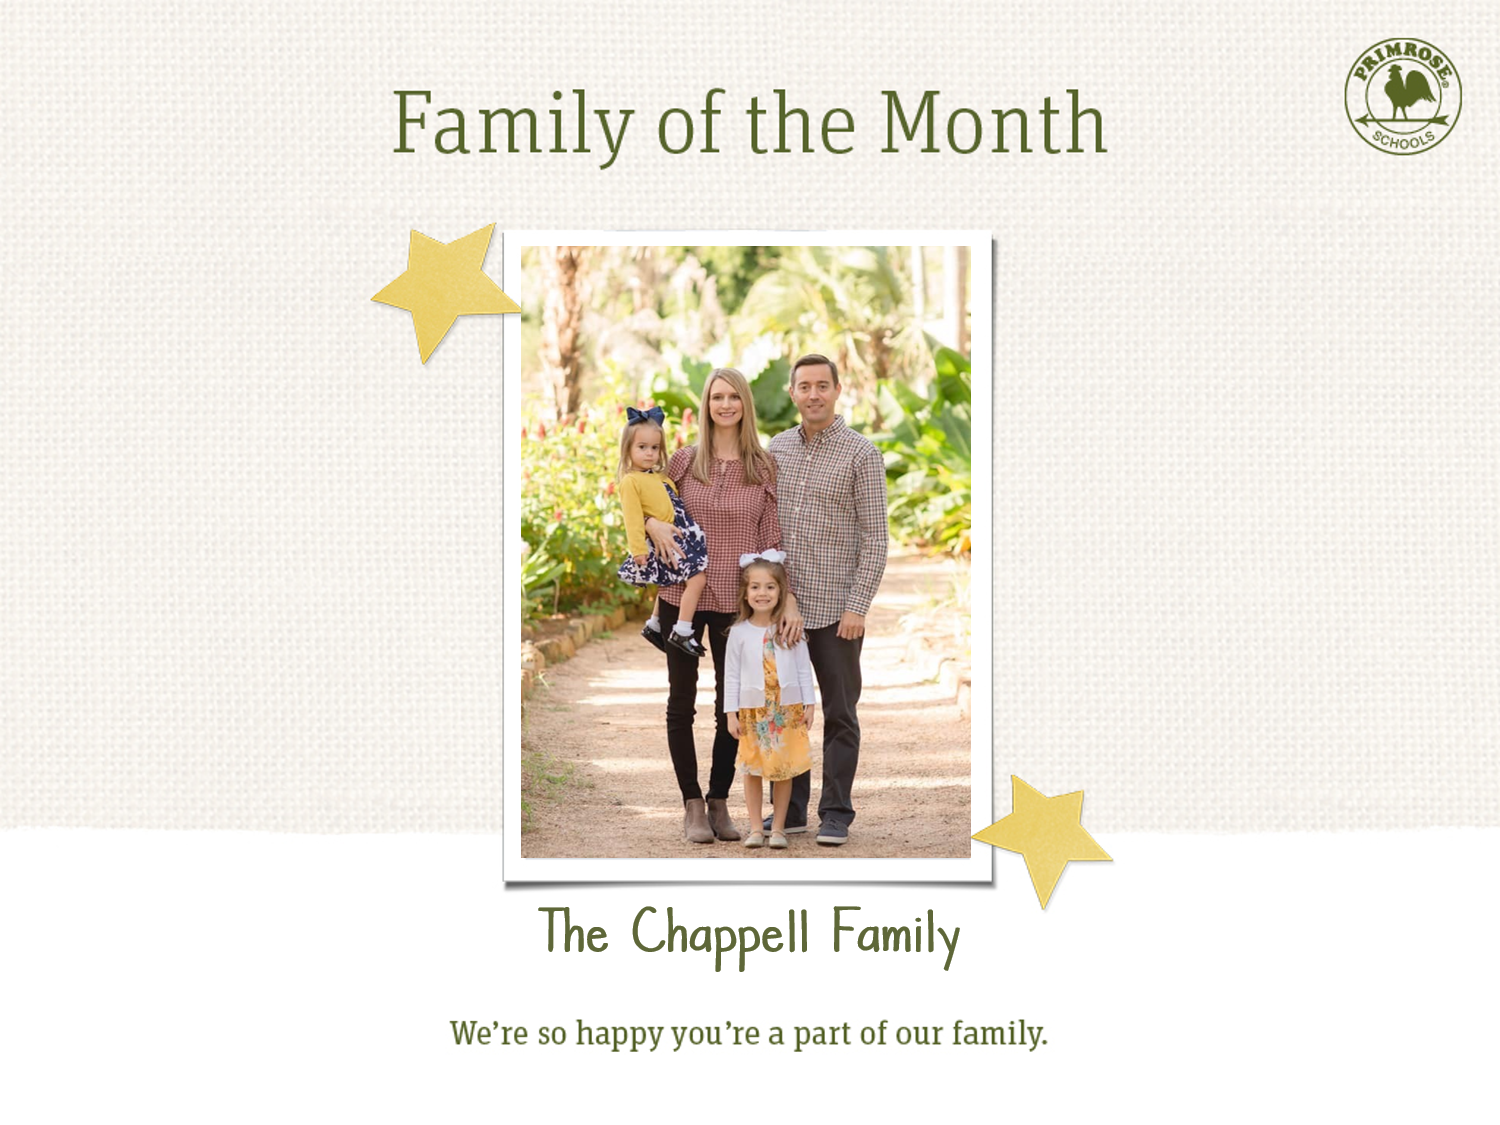 Chappell Family of the Month